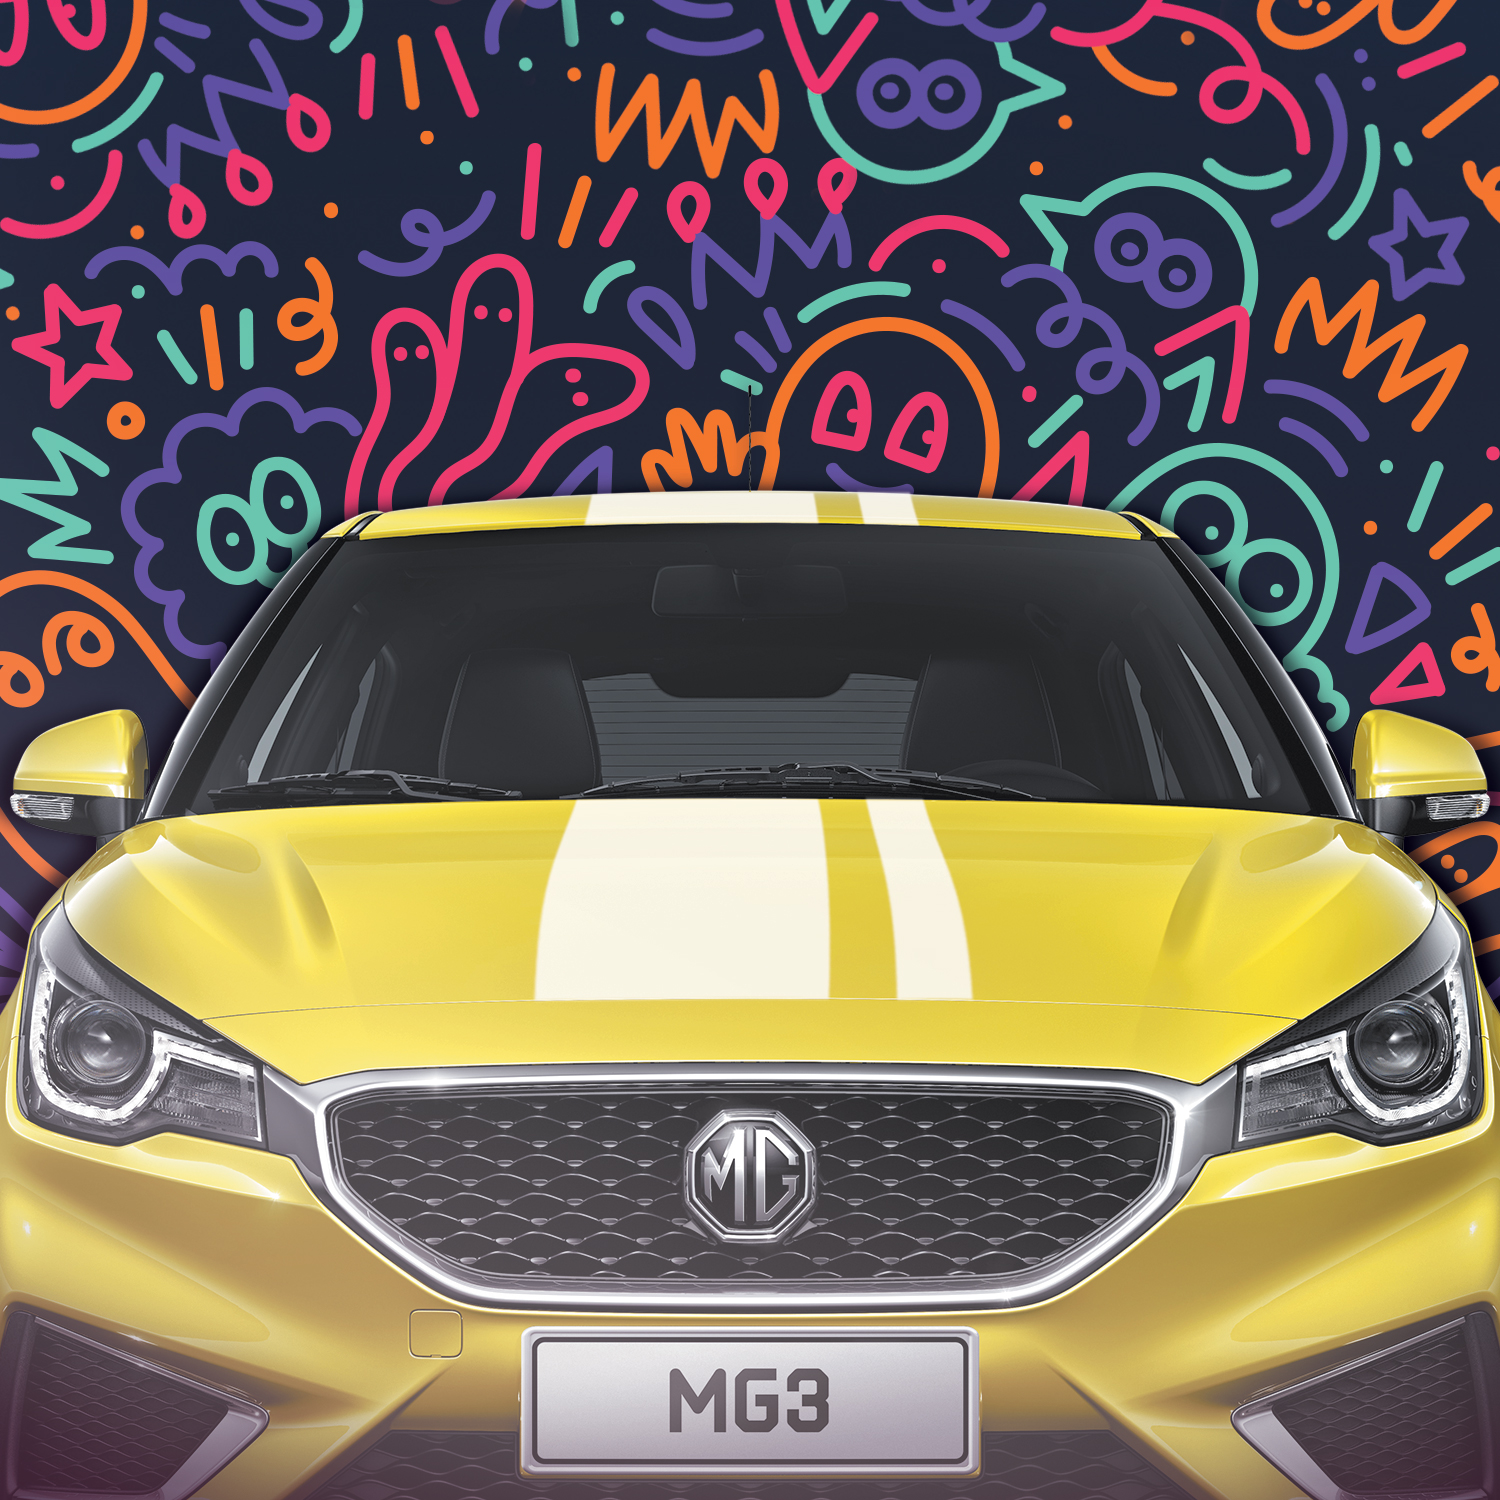 MG3 post ws